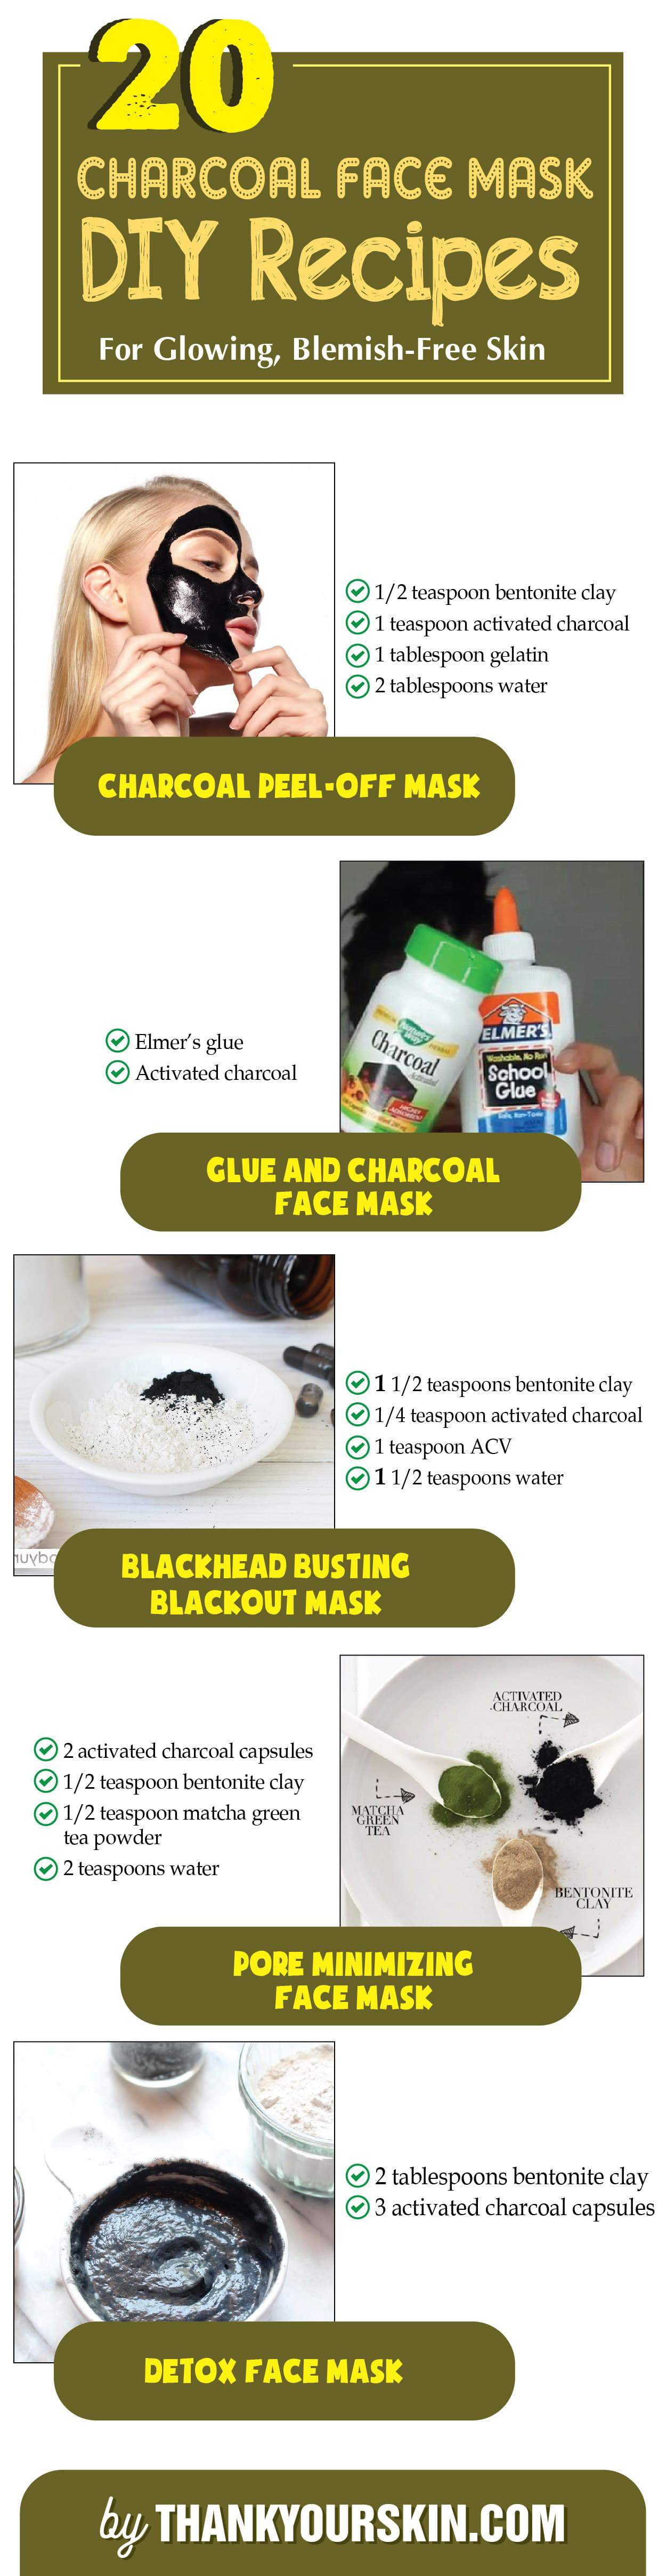 DIY Charcoal Face Mask